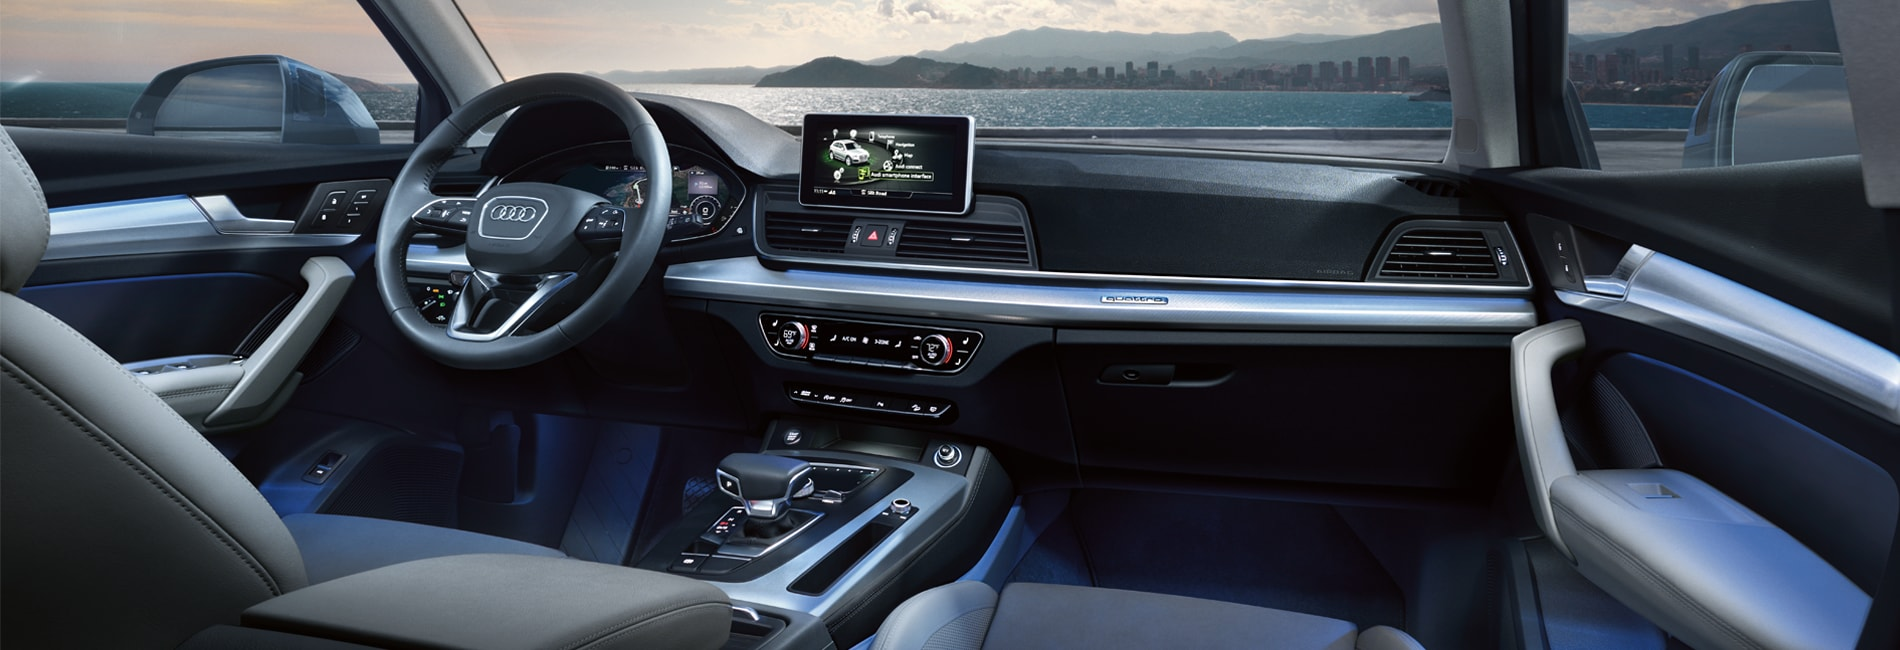 Audi Q5 Interior Vehicle Features